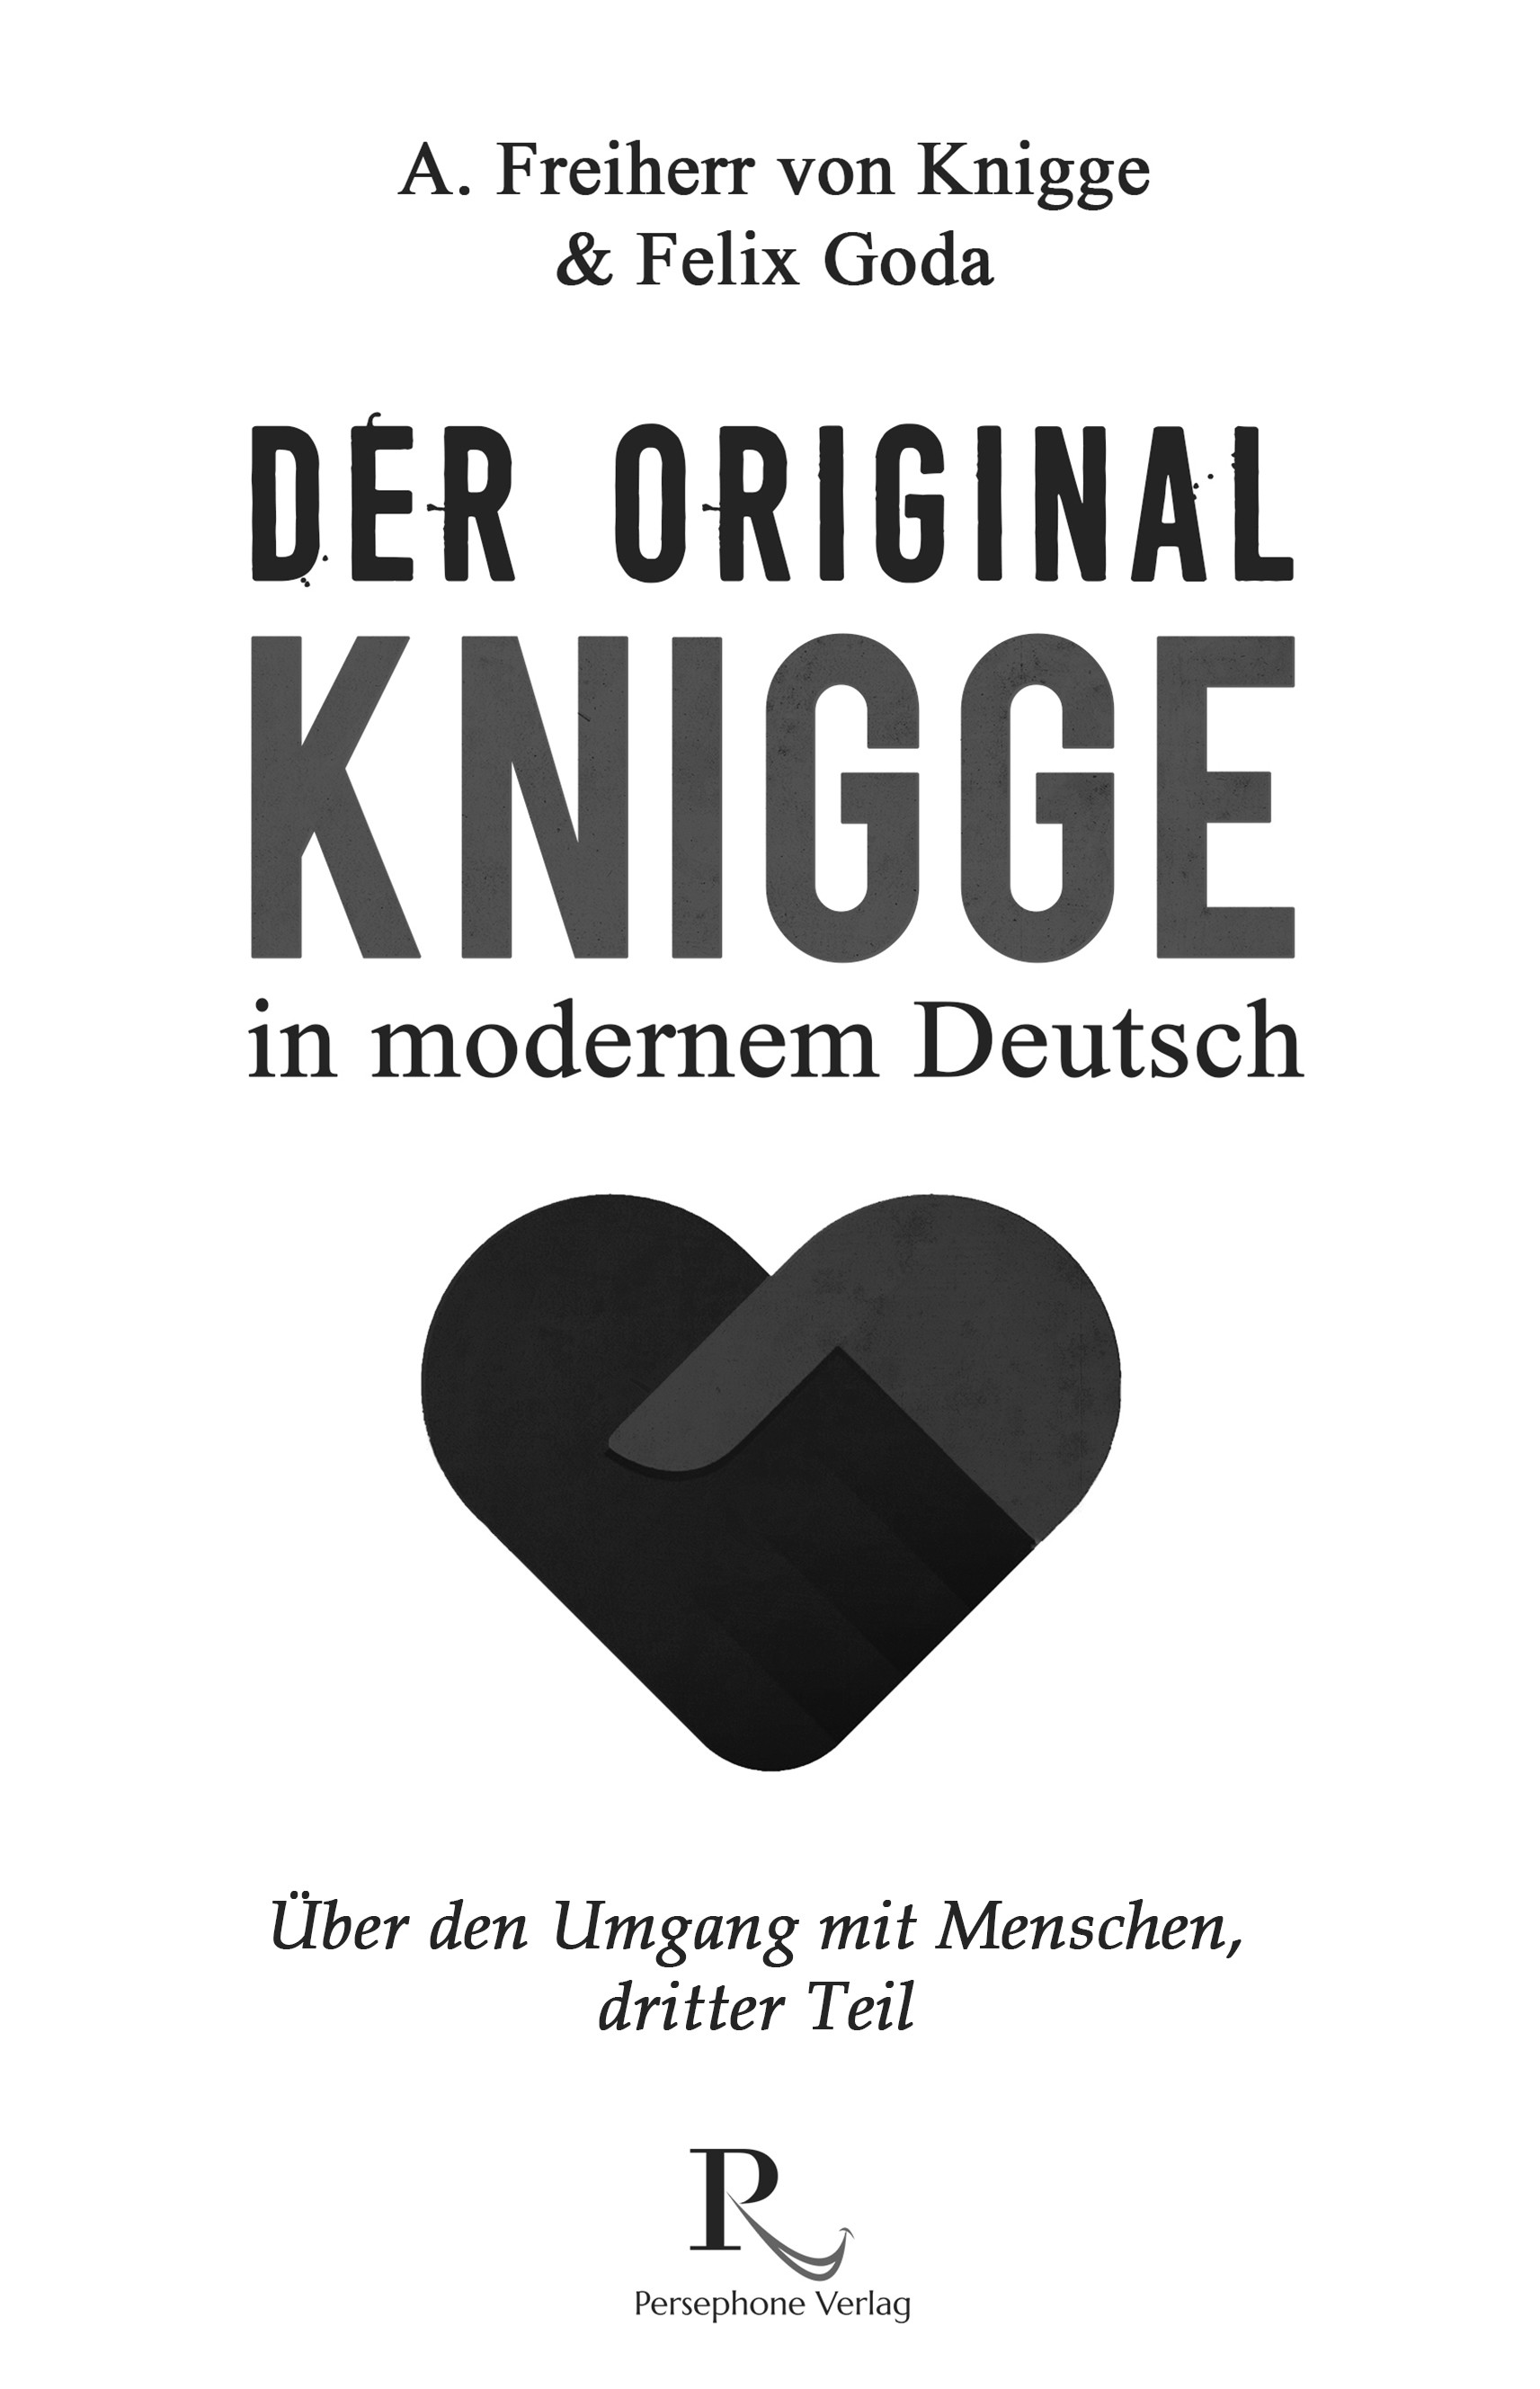 Book Cover for a German classic in new clothes